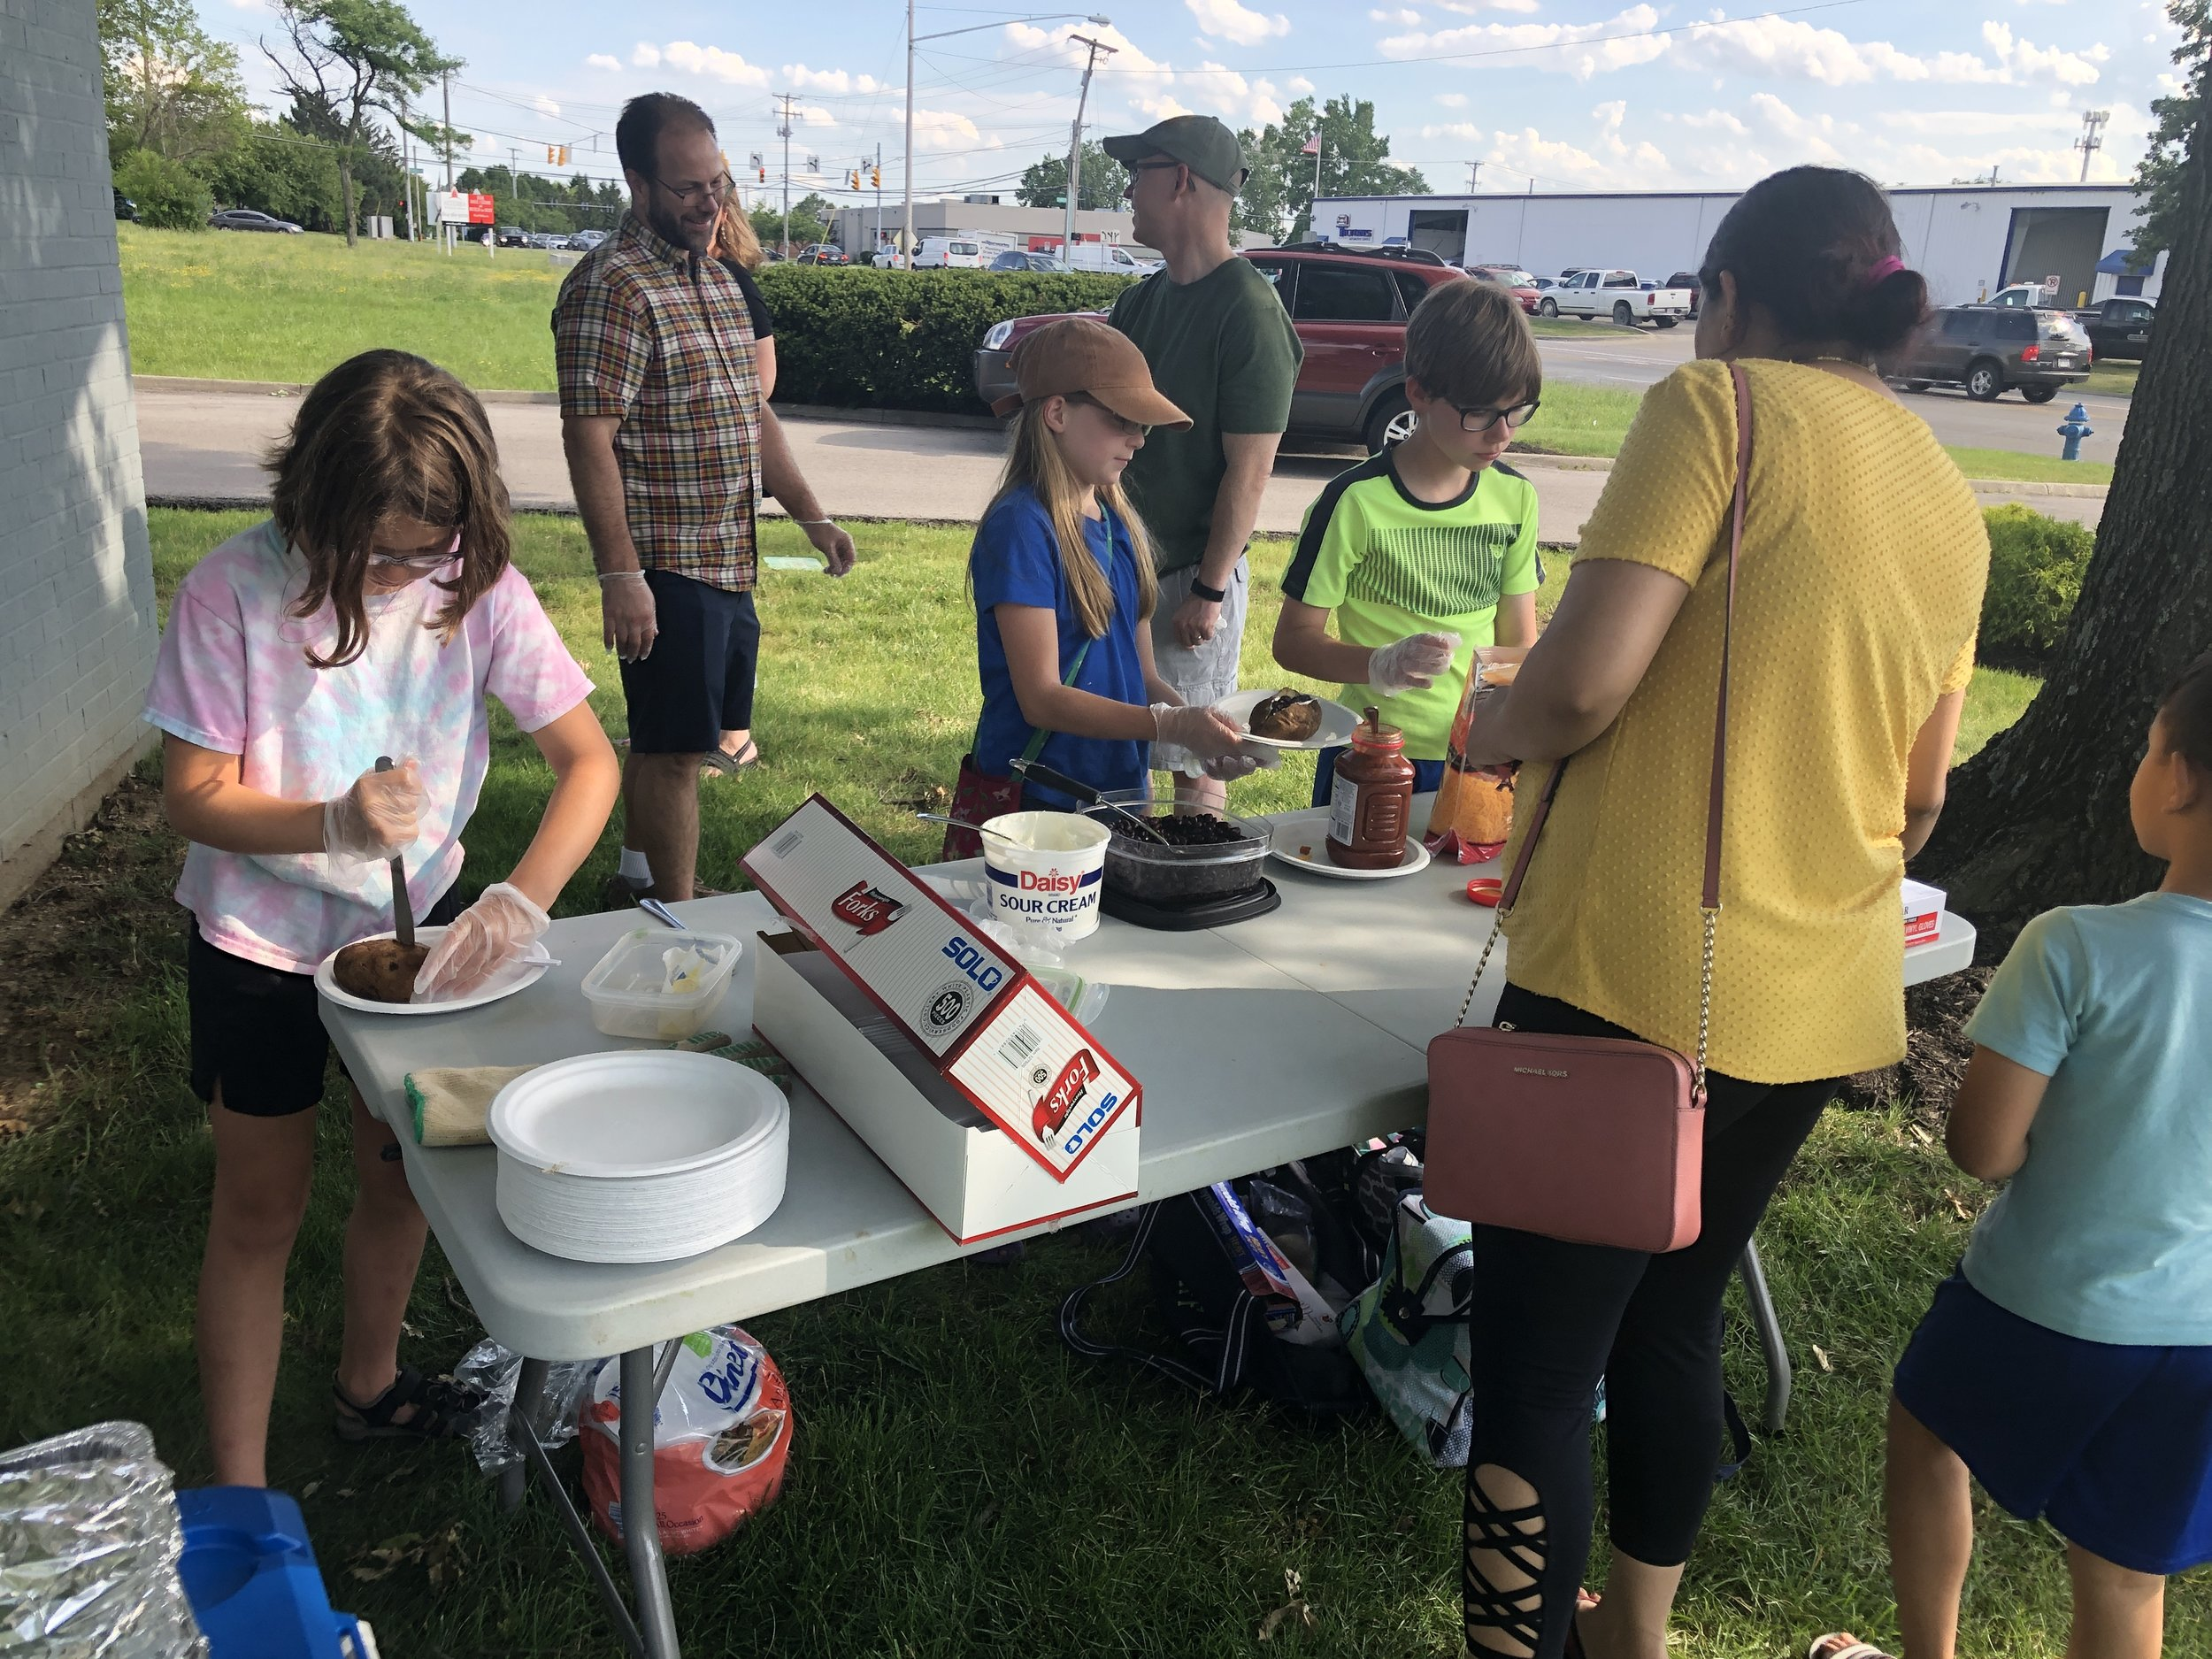 We are enjoying community meals this summer! -